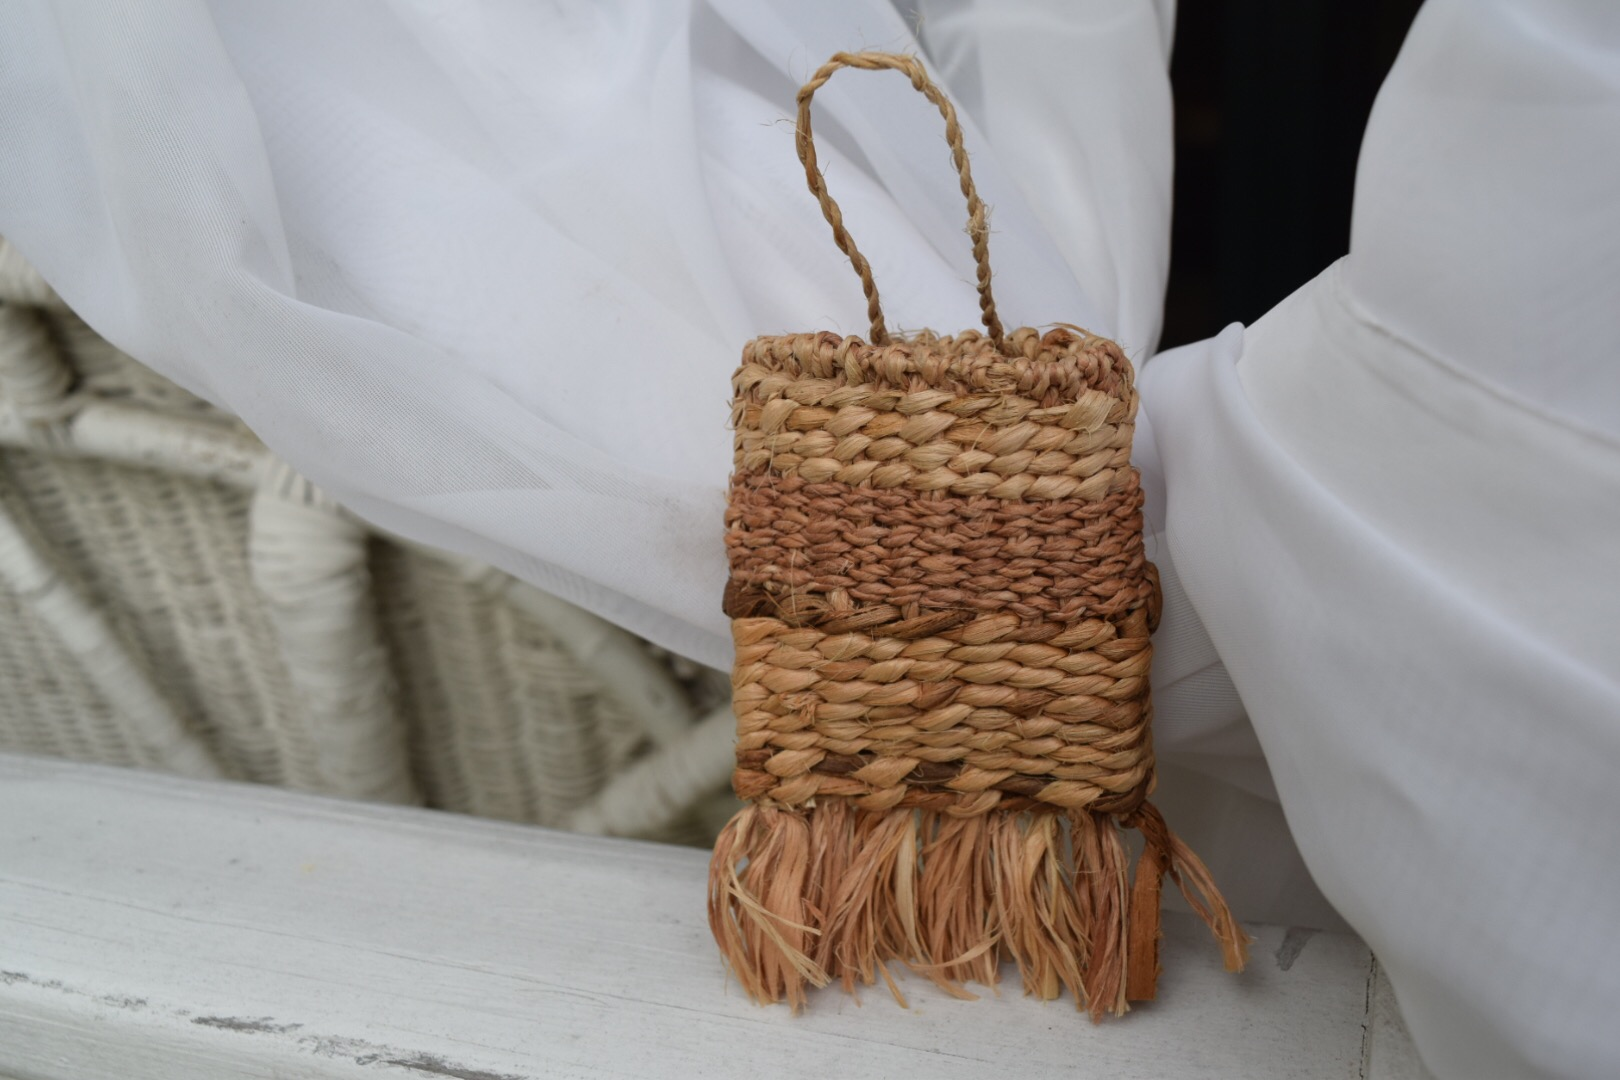 twined basswood cordage pouch